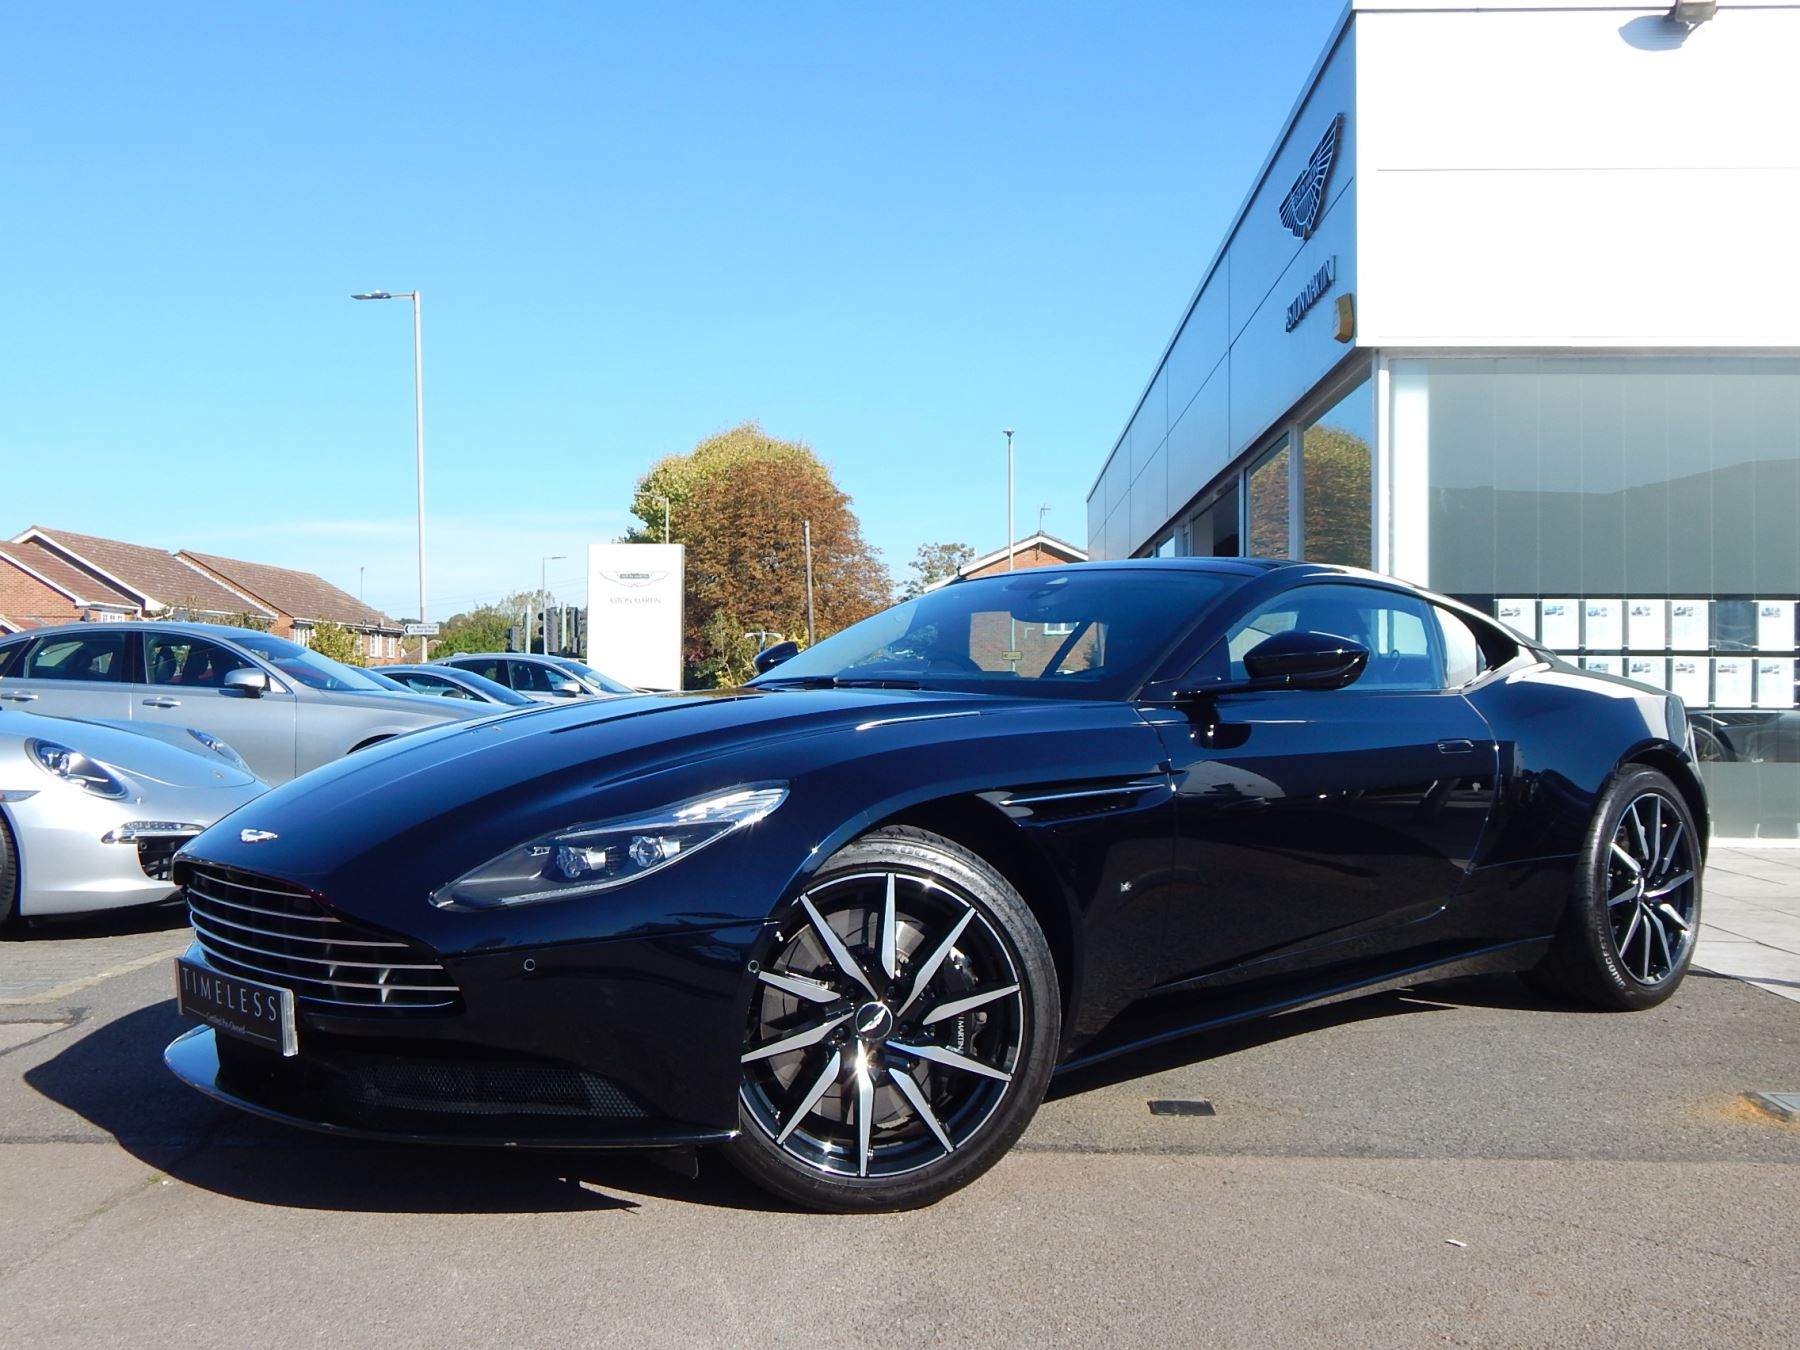 Aston Martin DB V Dr Touchtronic Automatic Coupe At - Aston martin marin